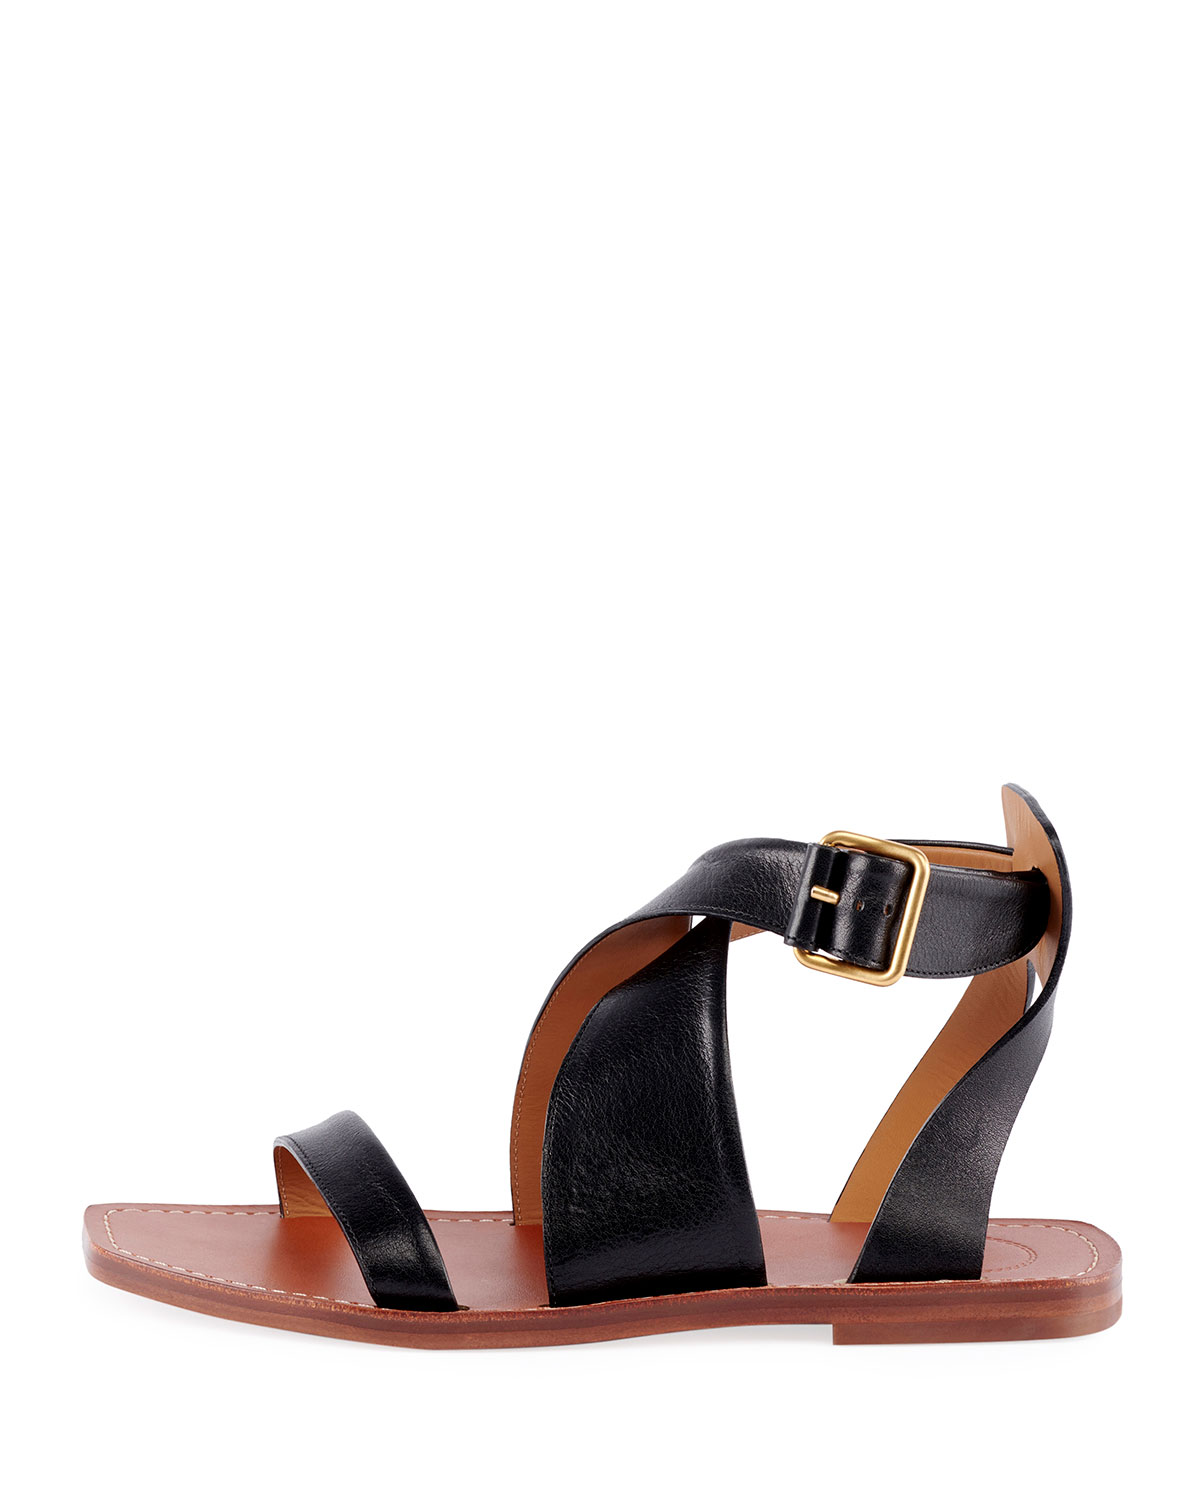 7705cfe3ddf79 Chloé Virginia Flat Strappy Sandals in 2019 | Products | Sandals ...